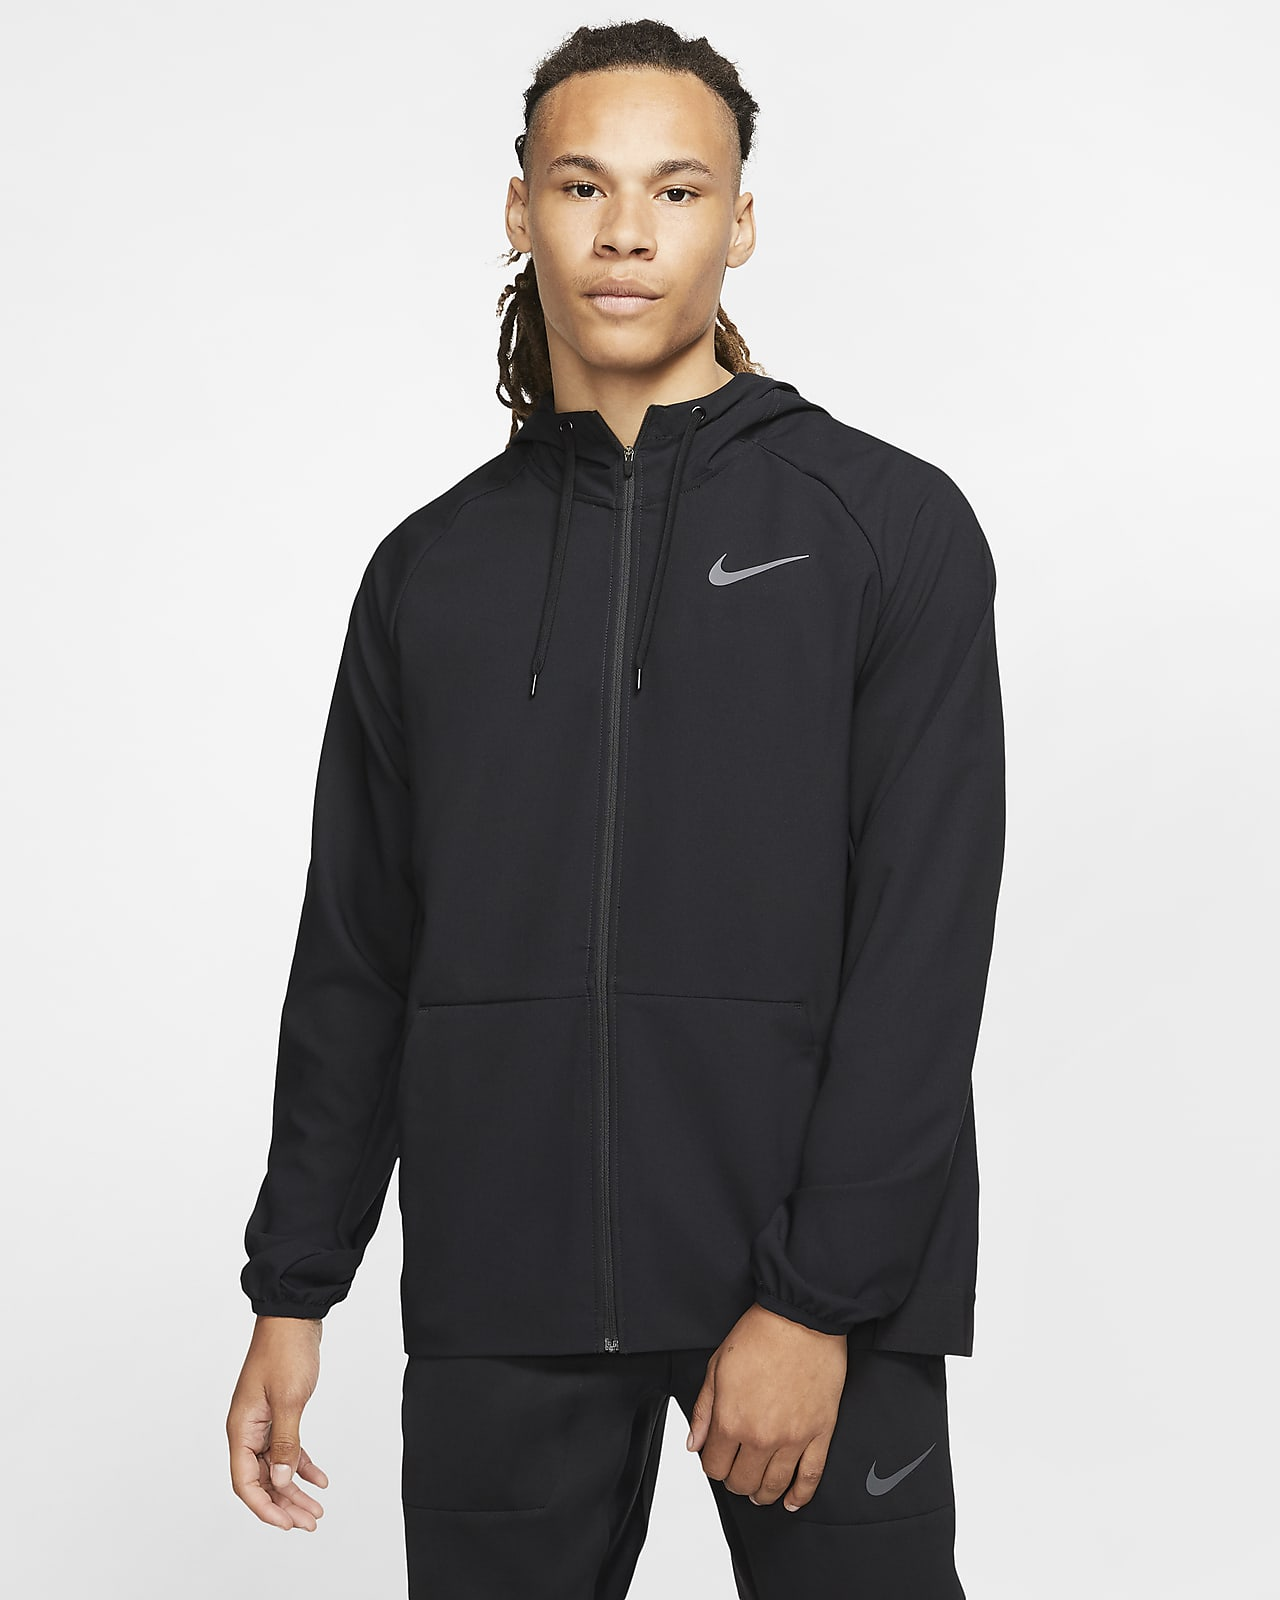 Monografía escritura impactante  Nike Flex Men's Full-Zip Training Jacket. Nike SA